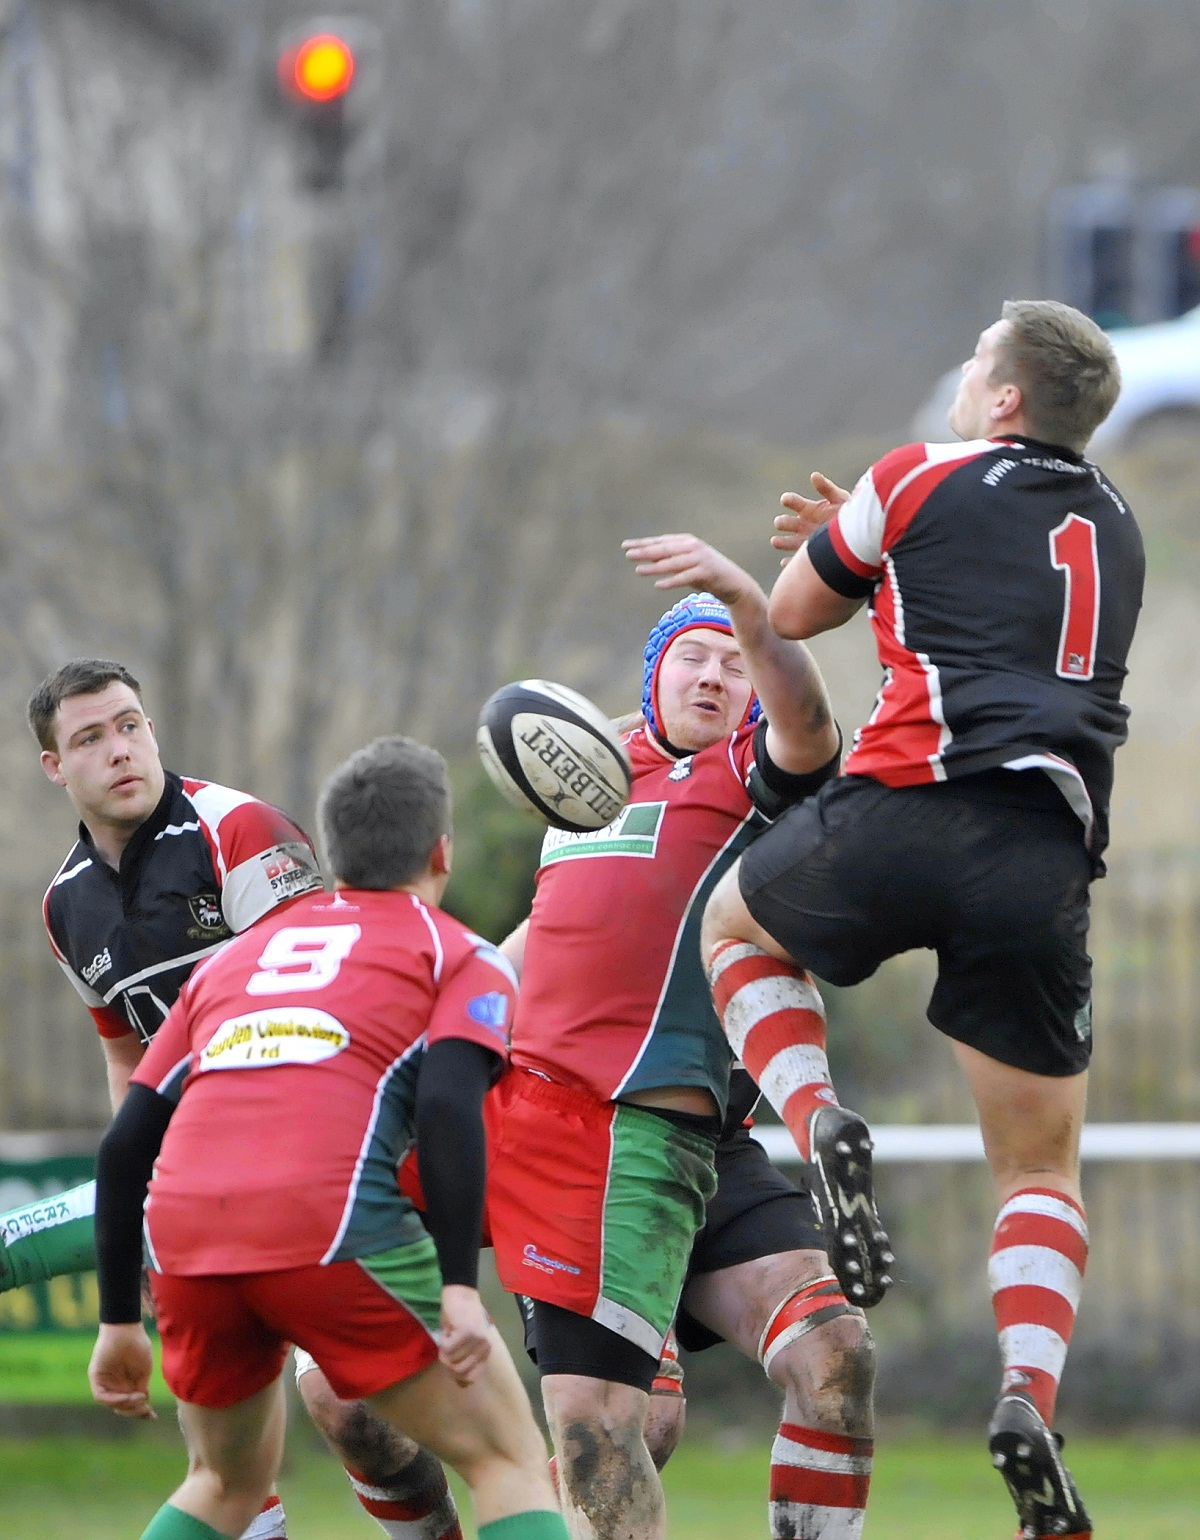 Keighley survived the late sin-binning of prop Craig Spencer (blue scrum cap) to claim a vital away win